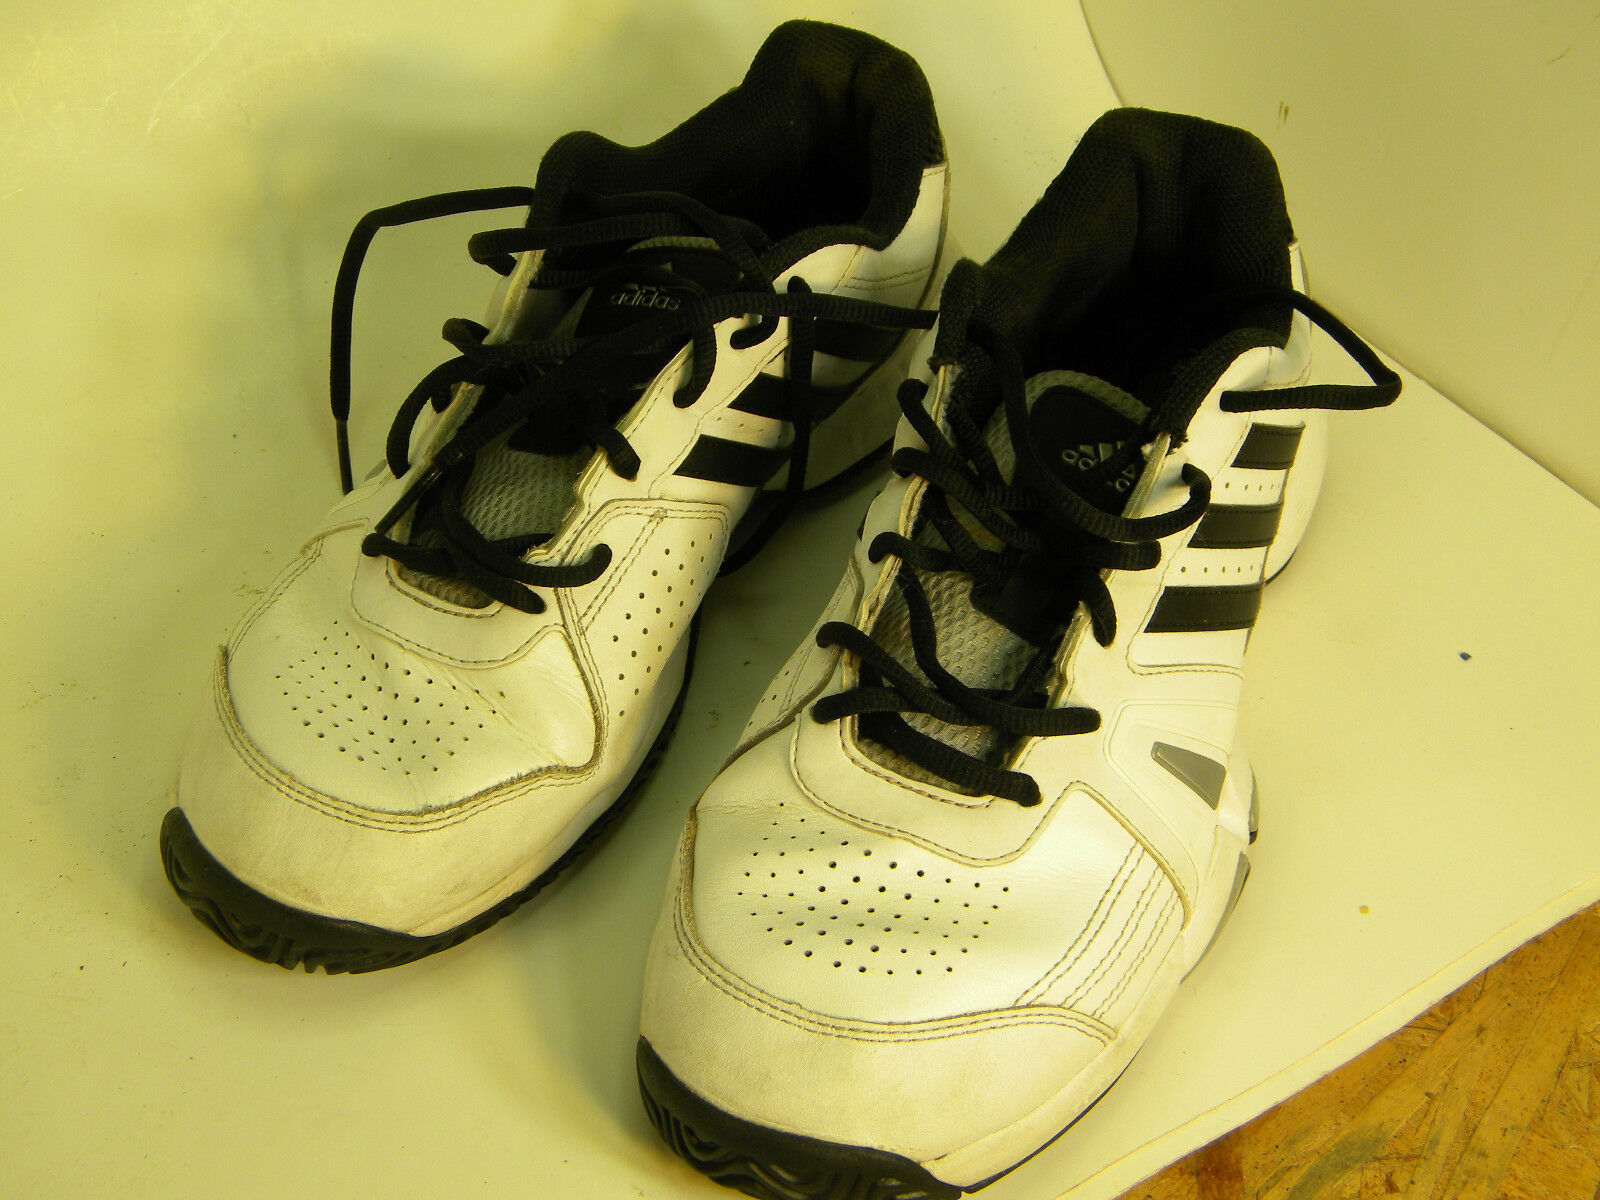 Adidas Men's AdiWear Athletic shoes Size 9.5, sports, running, outdoor.